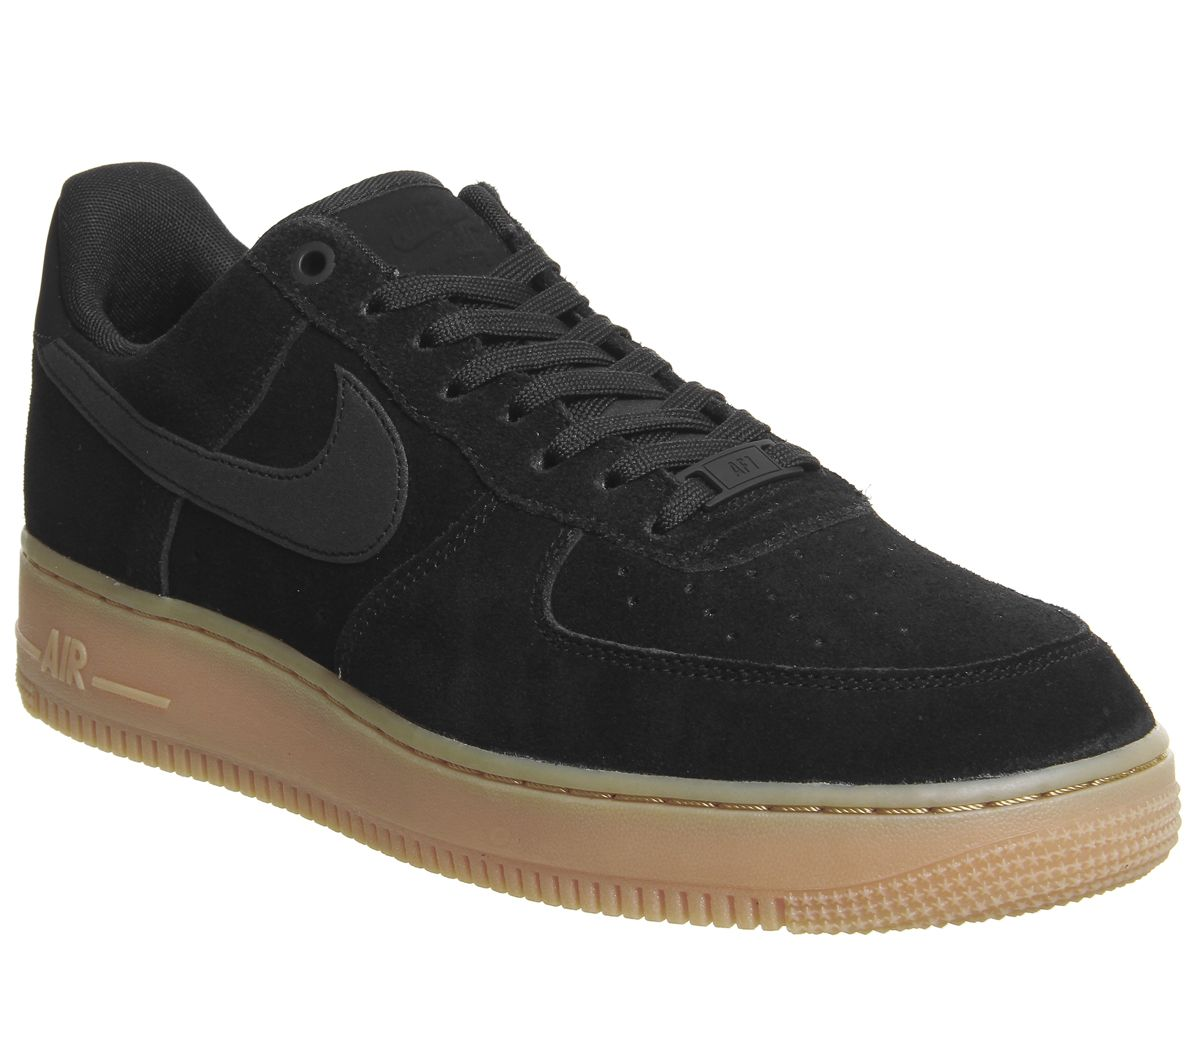 outlet store da974 f6930 Nike Nike Air Force One Trainers Black Gum - His trainers